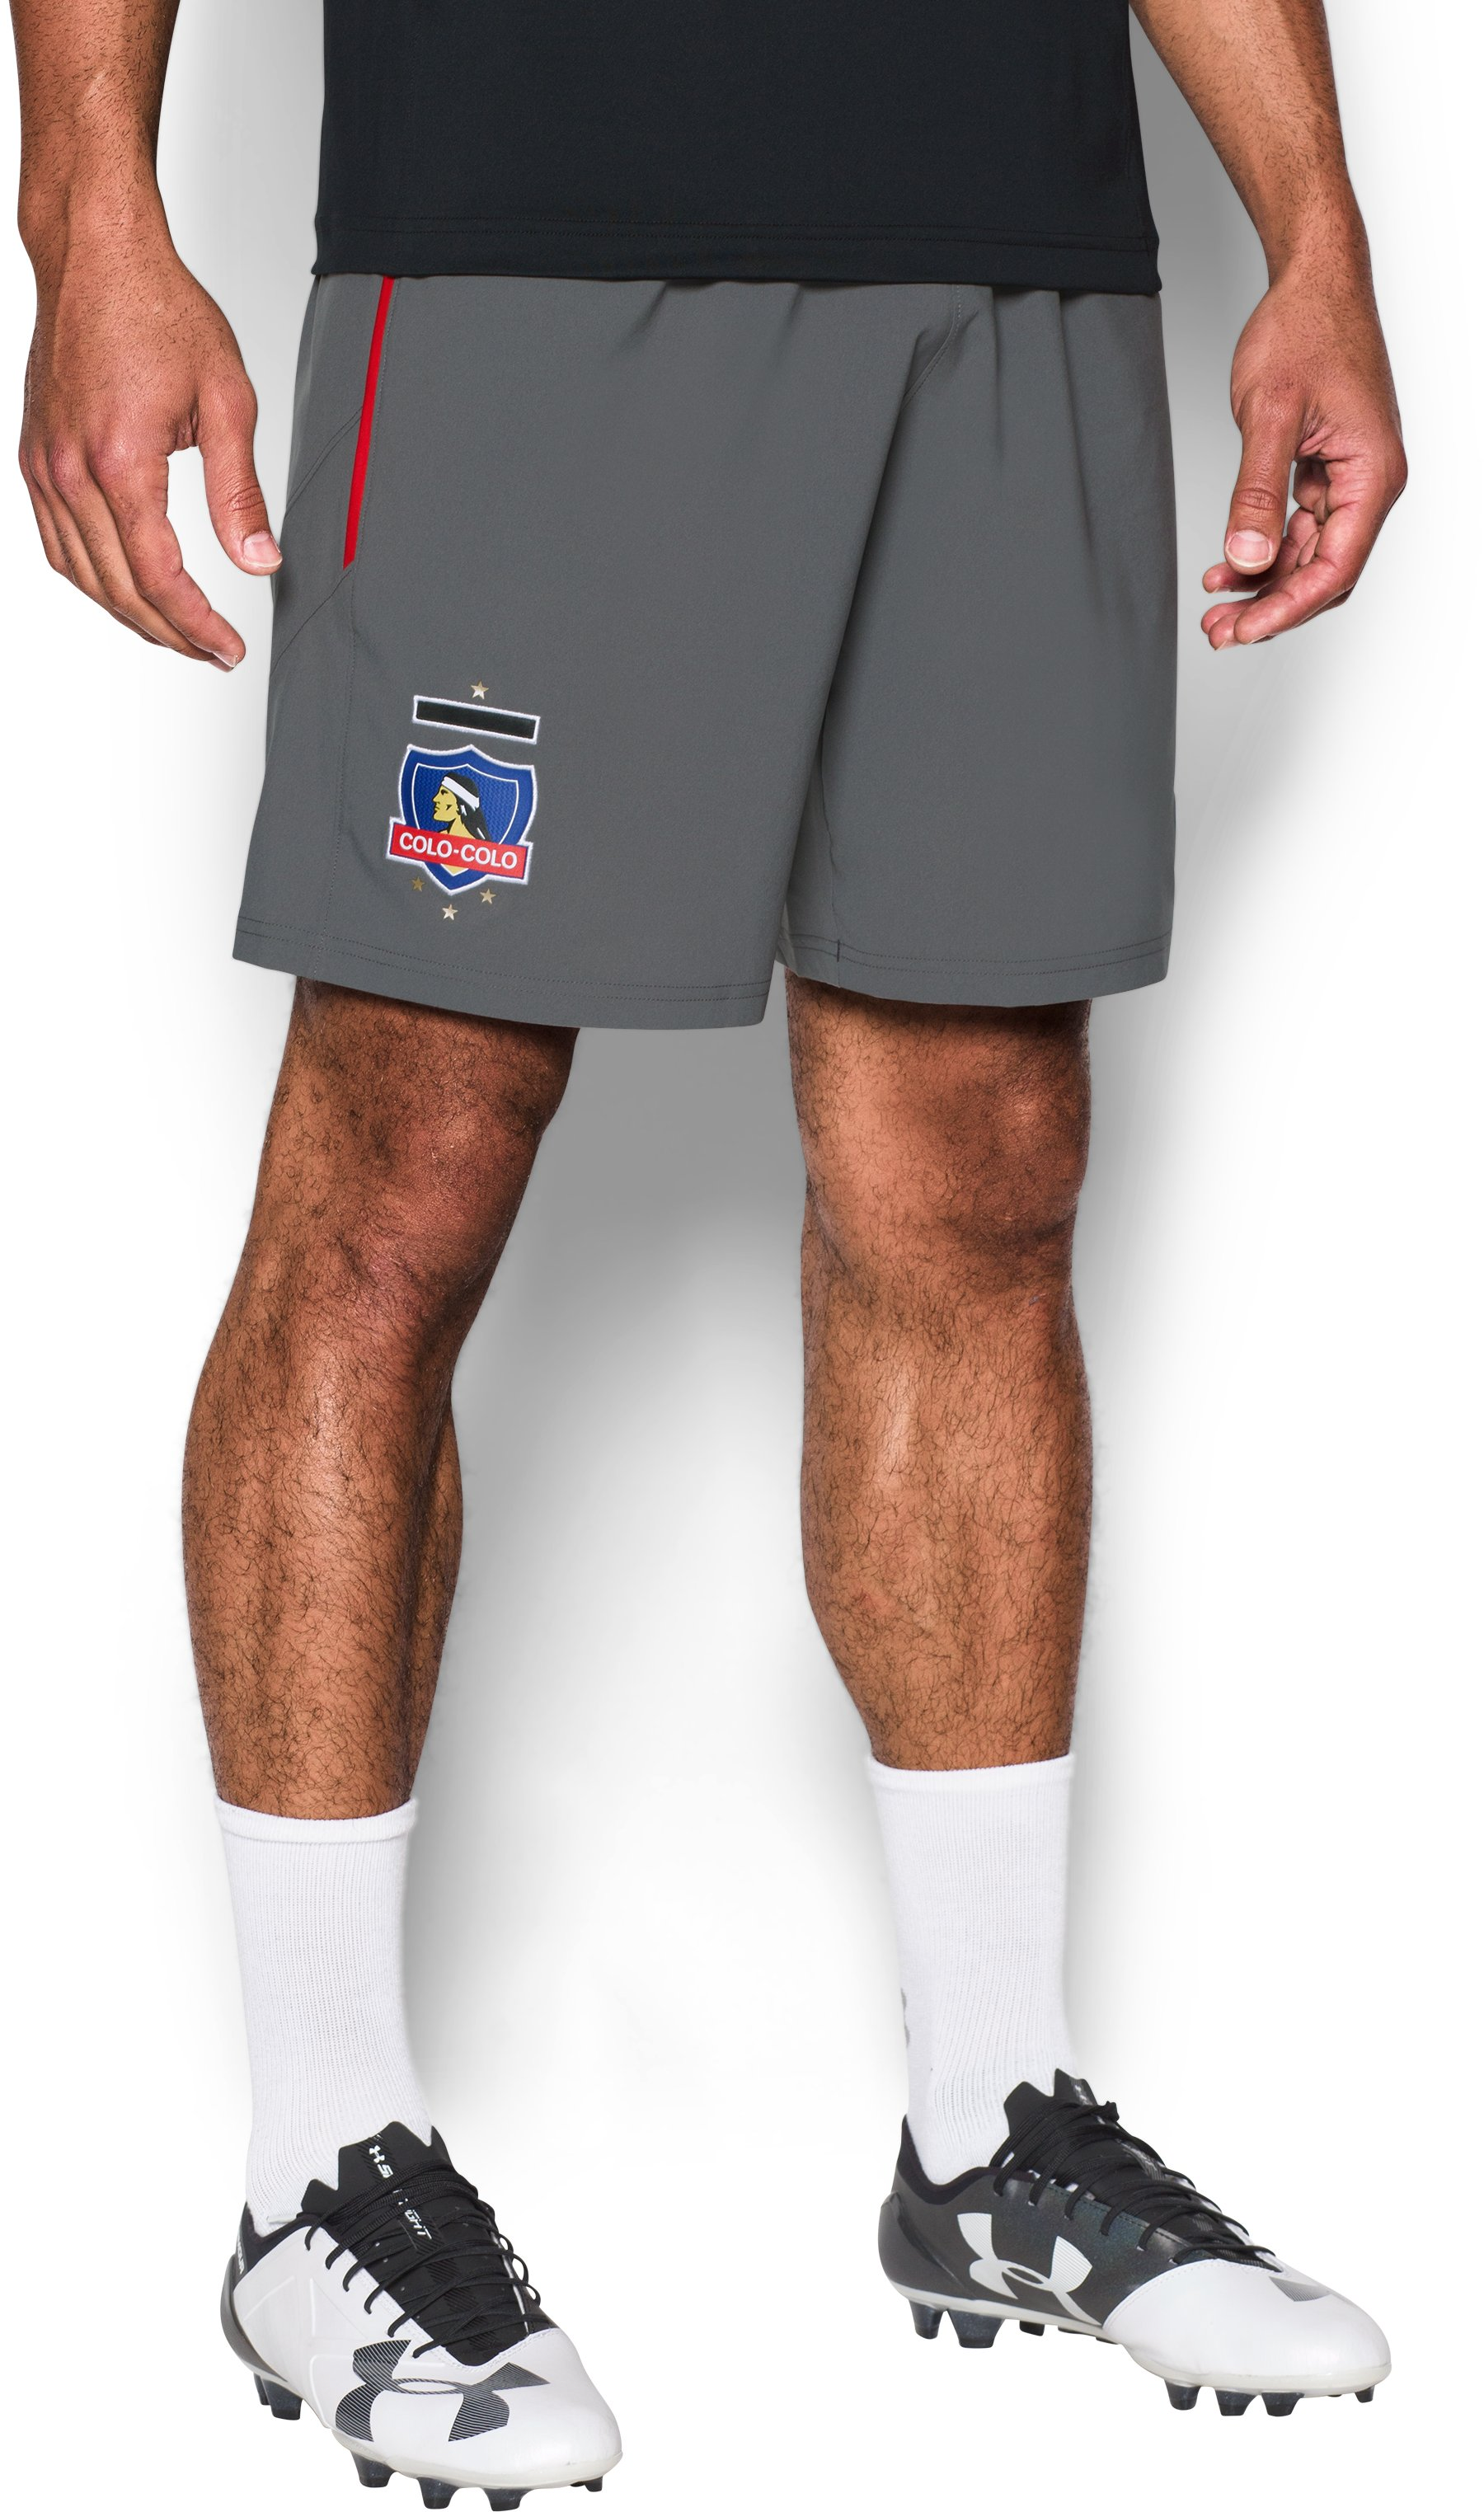 Men's Colo-Colo 16/17 Training Shorts, Graphite